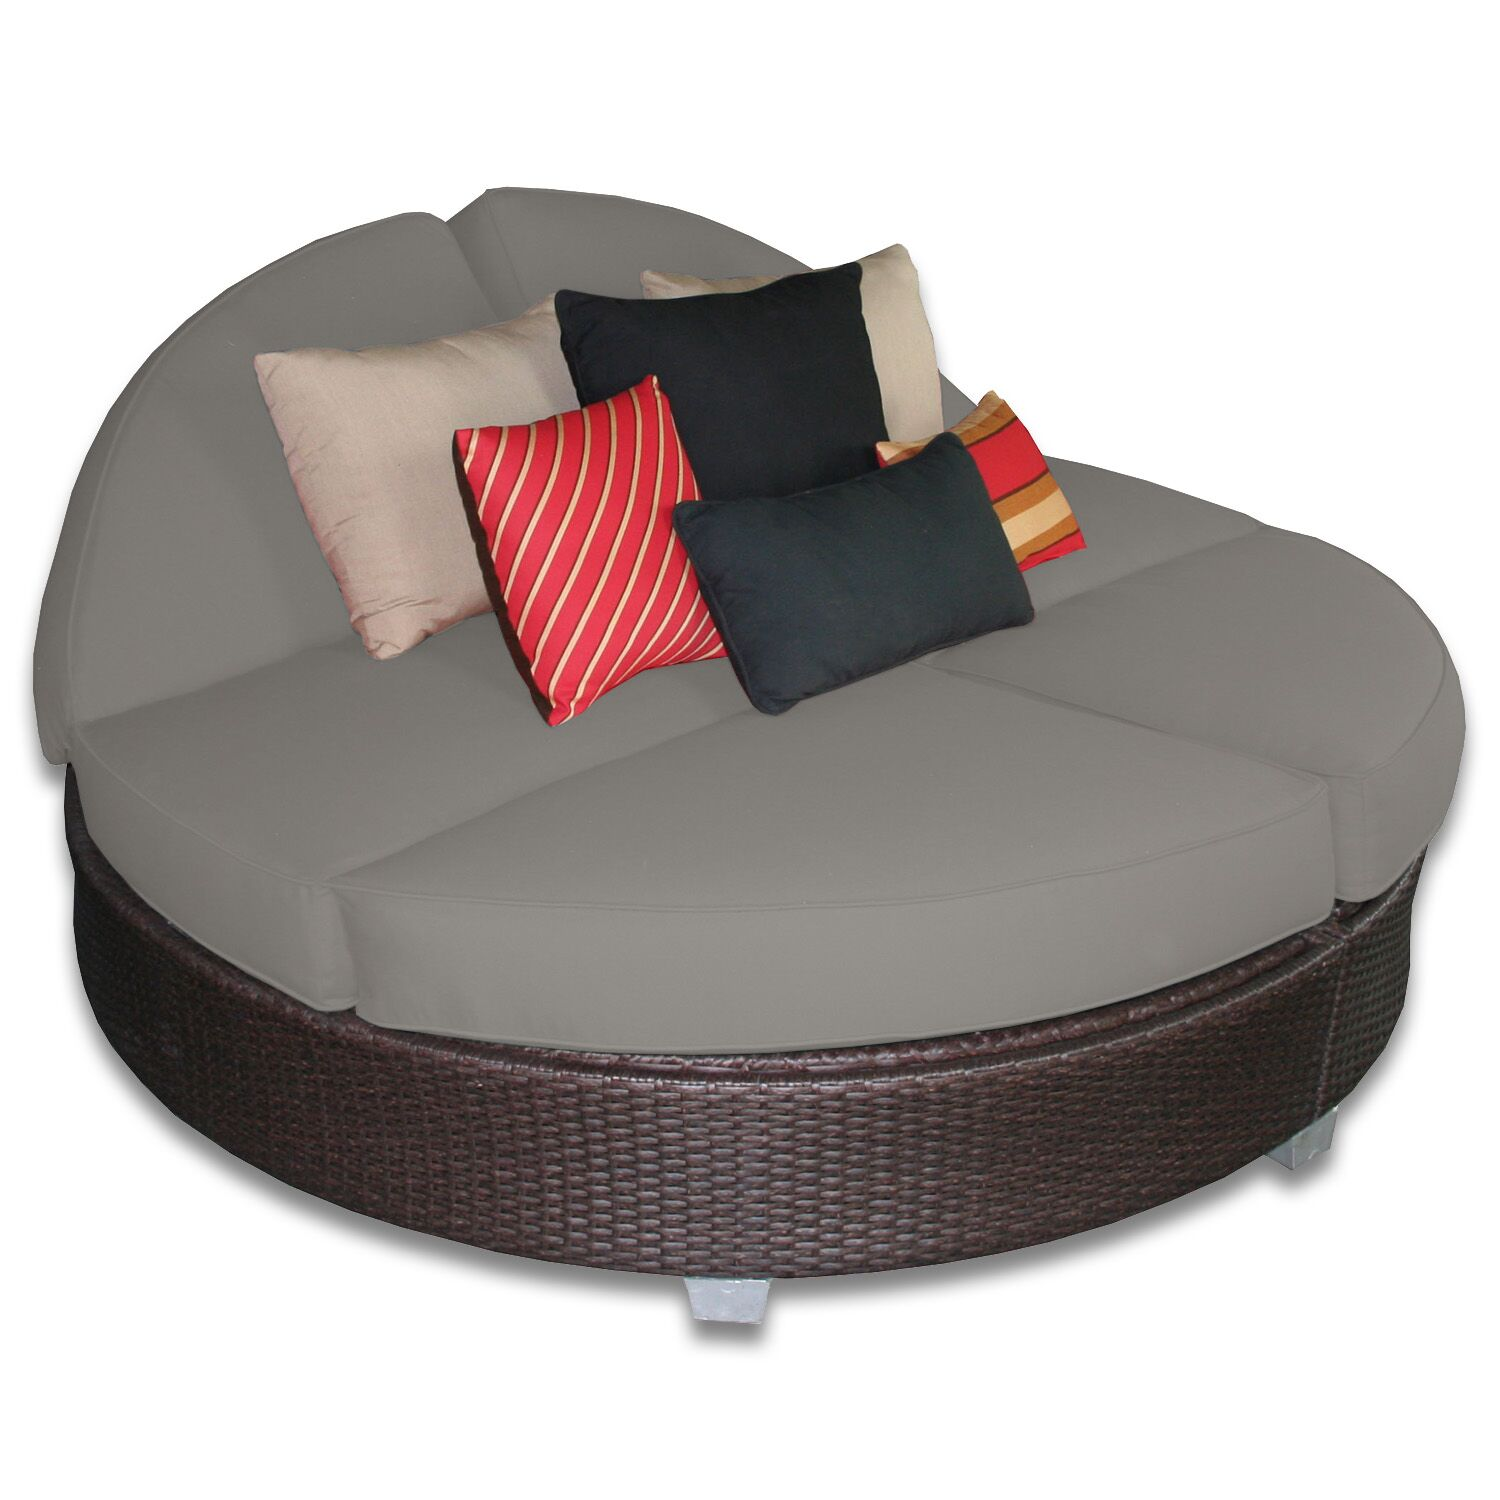 Signature Round Double Chaise Lounge Fabric Color: Graphite